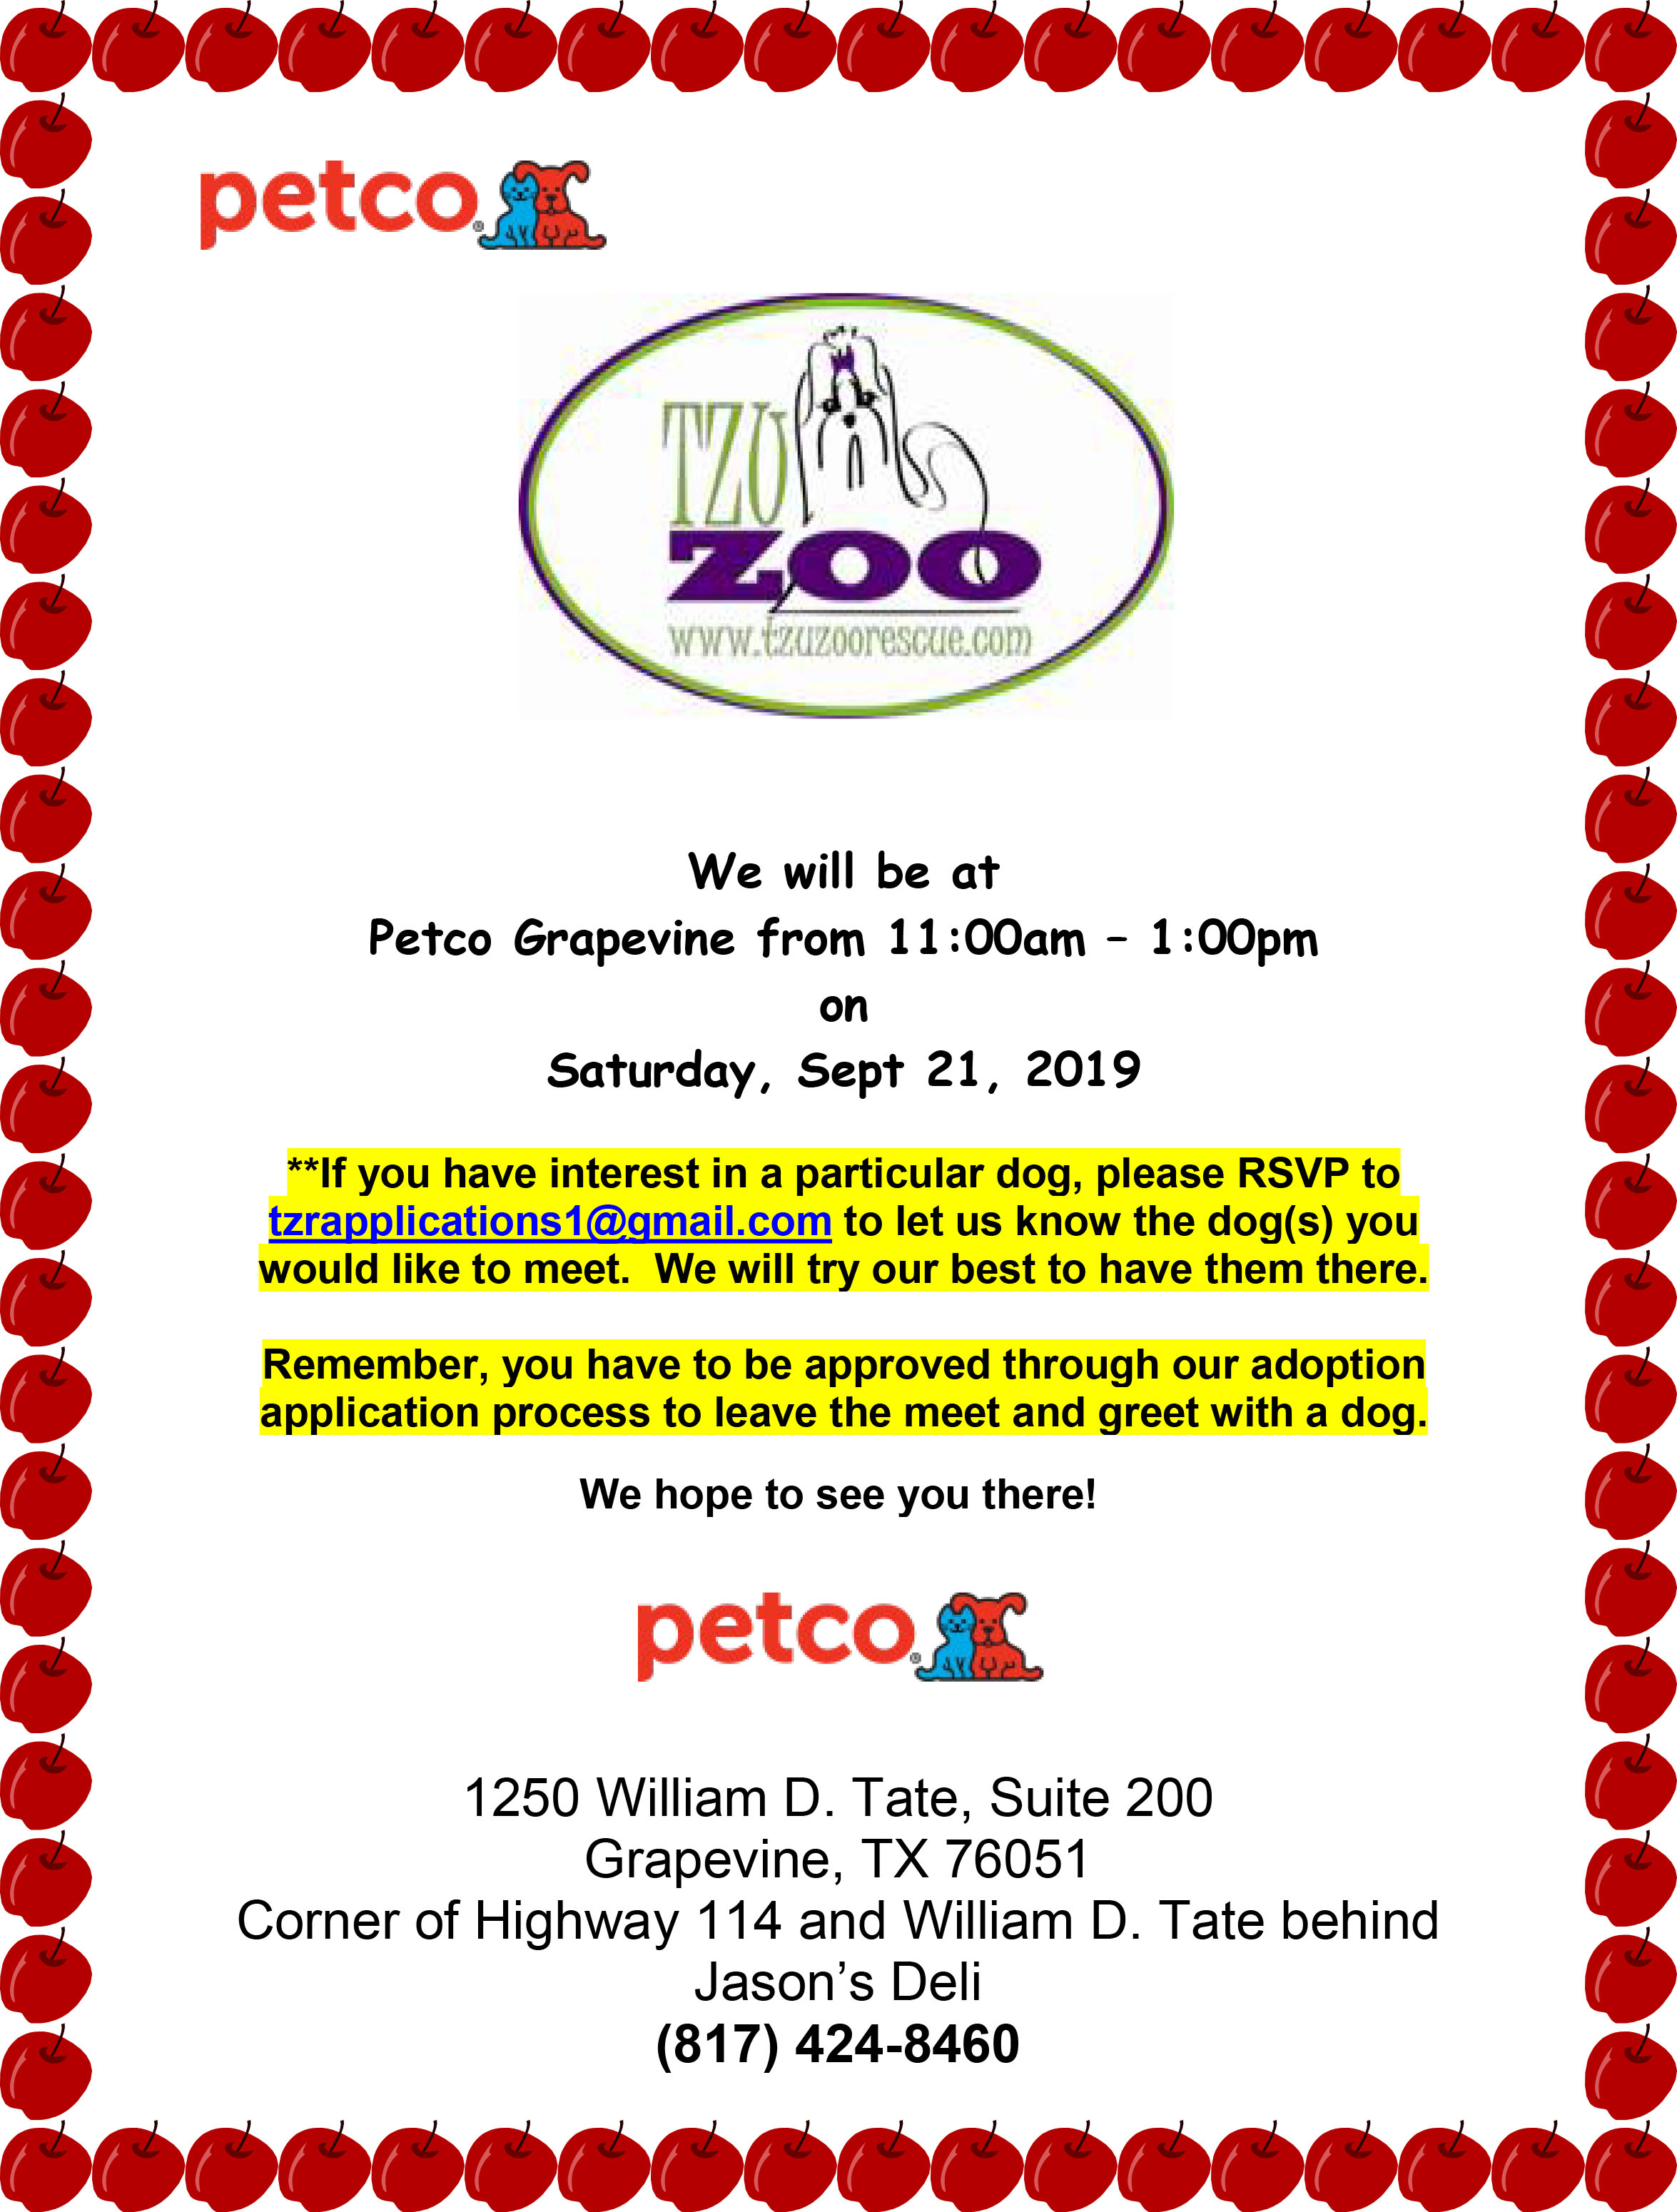 Meet & Greet - Petco, Grapevine